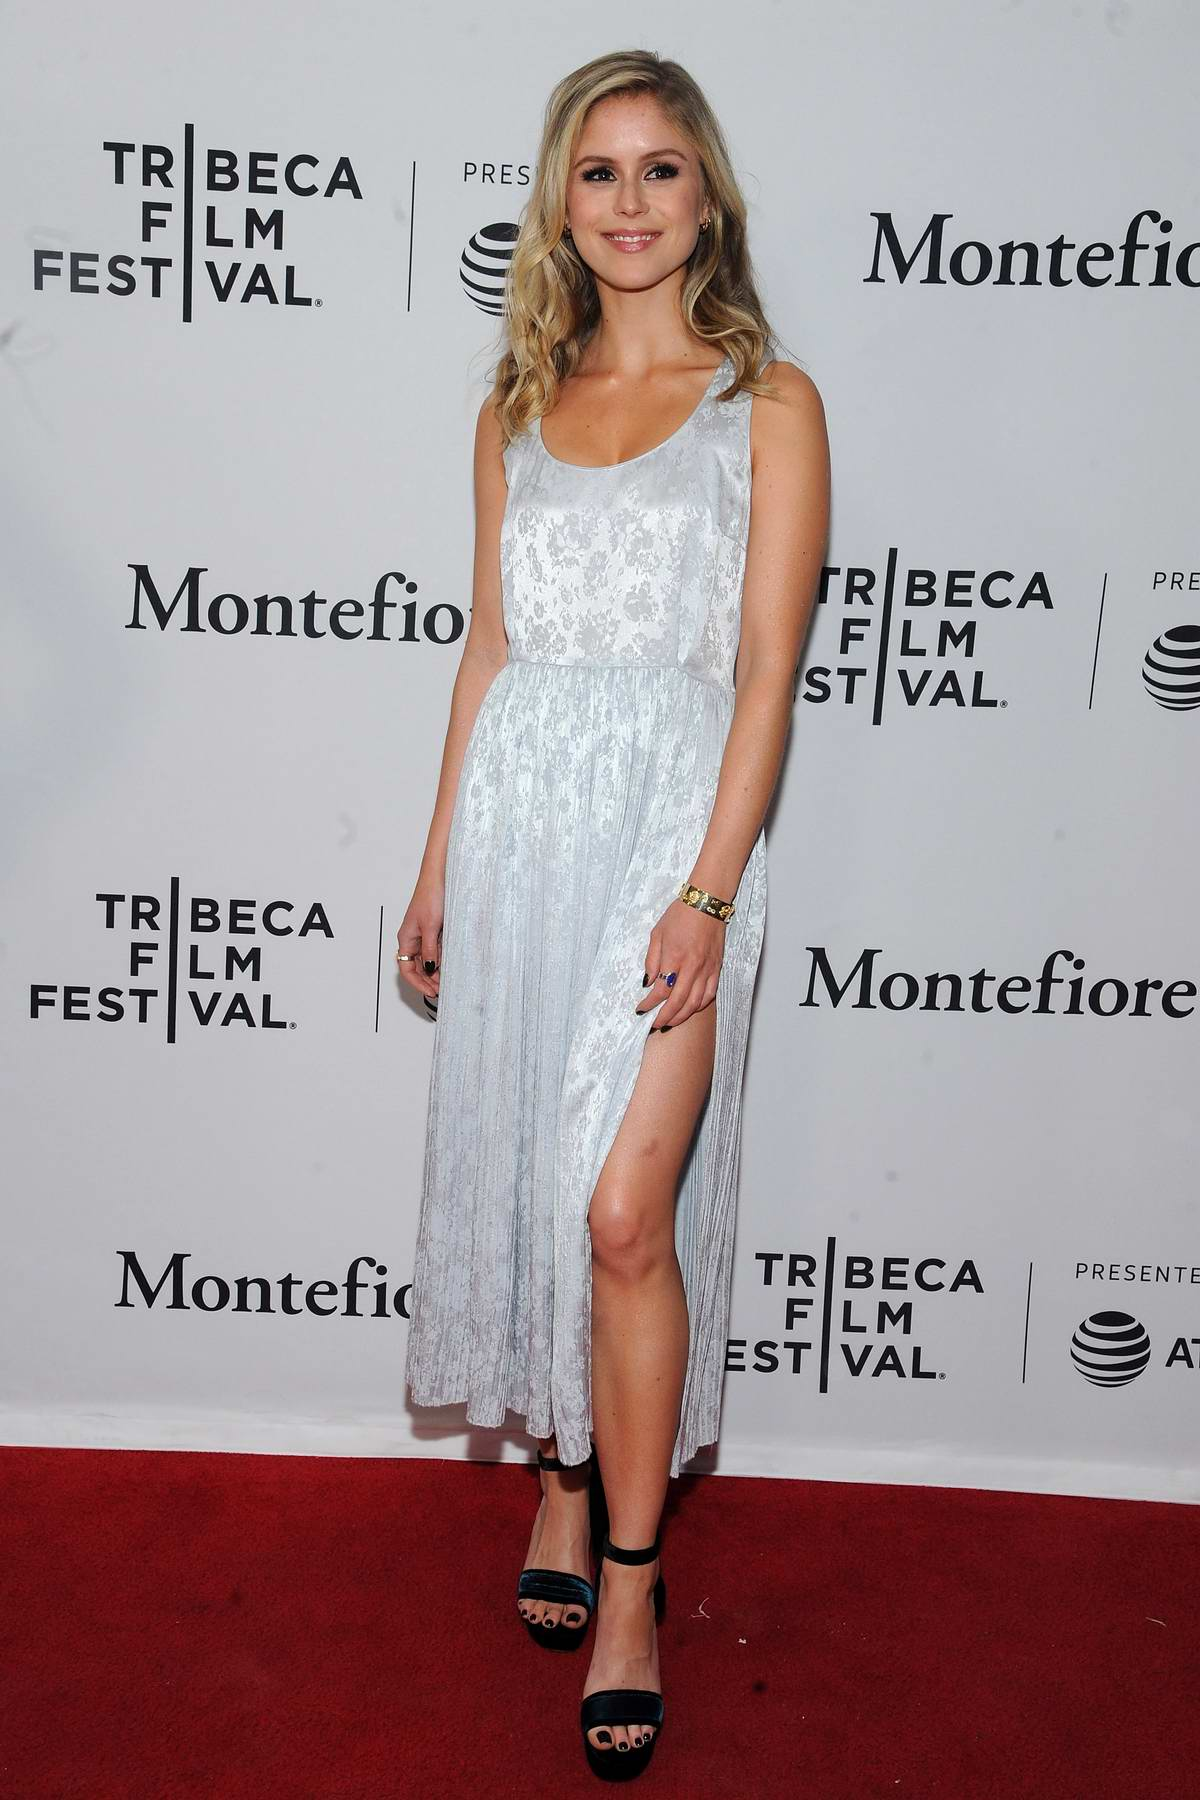 Erin Moriarty attends 'The Boys' premiere during 2019 Tribeca Film Festival in New York City